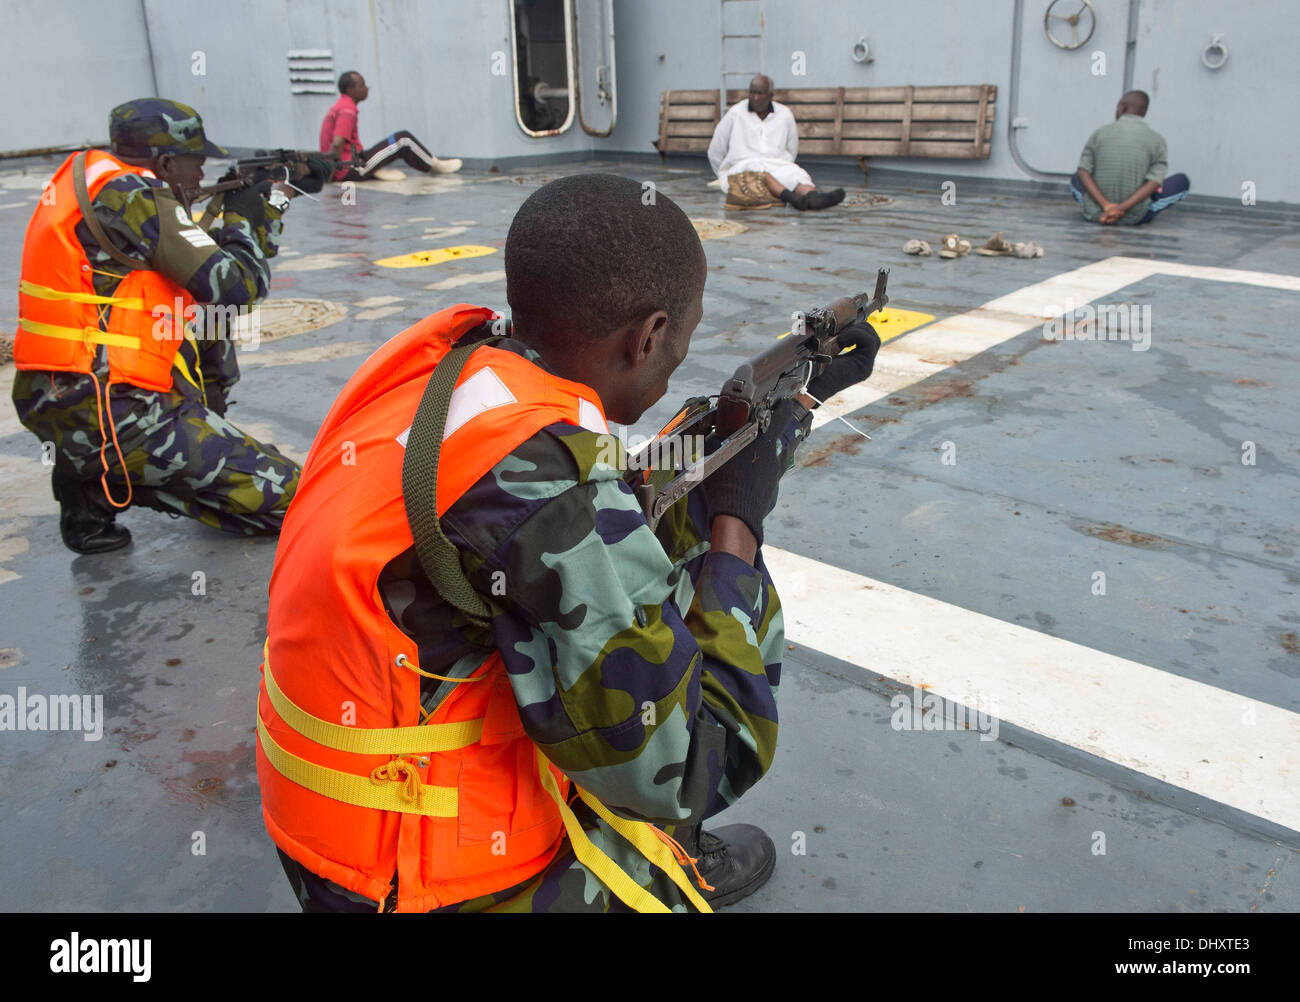 DJIBOUTI, Djibouti (Nov. 14, 2013) - Uganda People's Defence Force members guard simulated detainees on a vessel during Exercise Cutlass Express 2013 in the Gulf of Tadjoura near Djibouti. Exercise Cutlass Express 2013 is a multinational maritime exercise - Stock Image